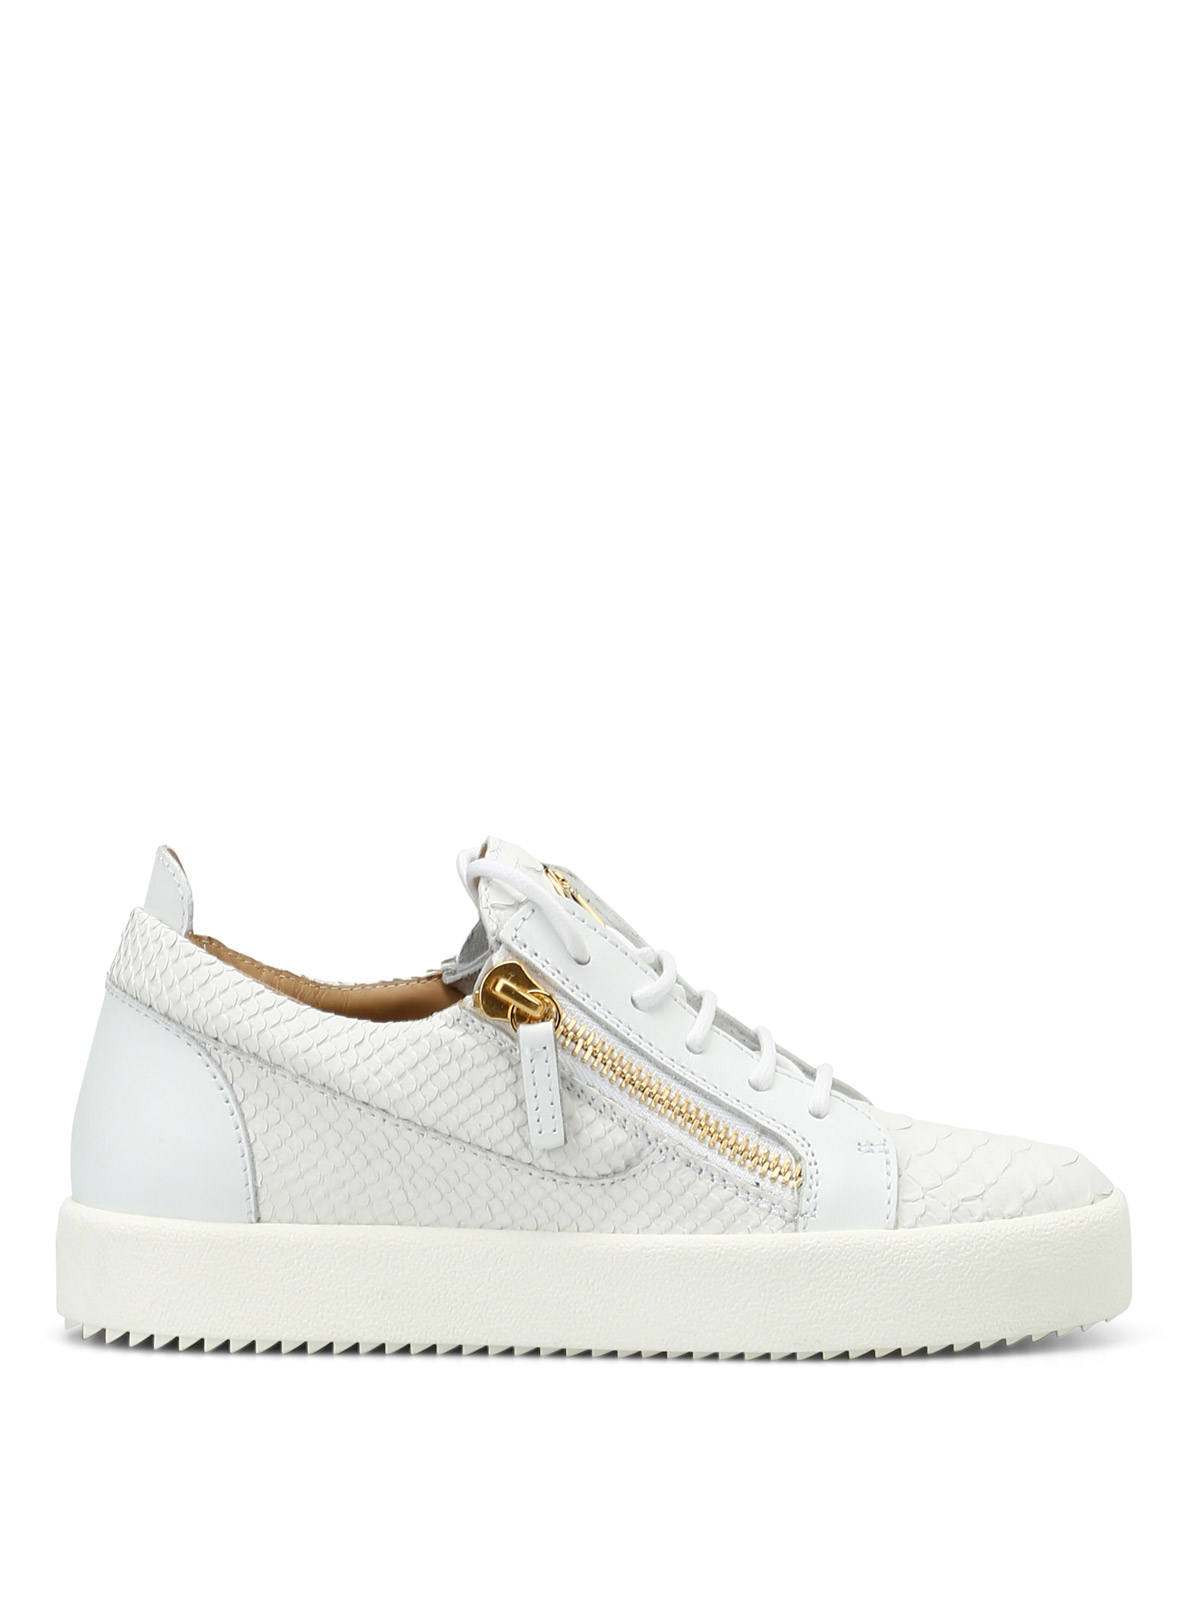 ddeec08ce3b88 Giuseppe Zanotti - May London printed leather sneakers - trainers ...